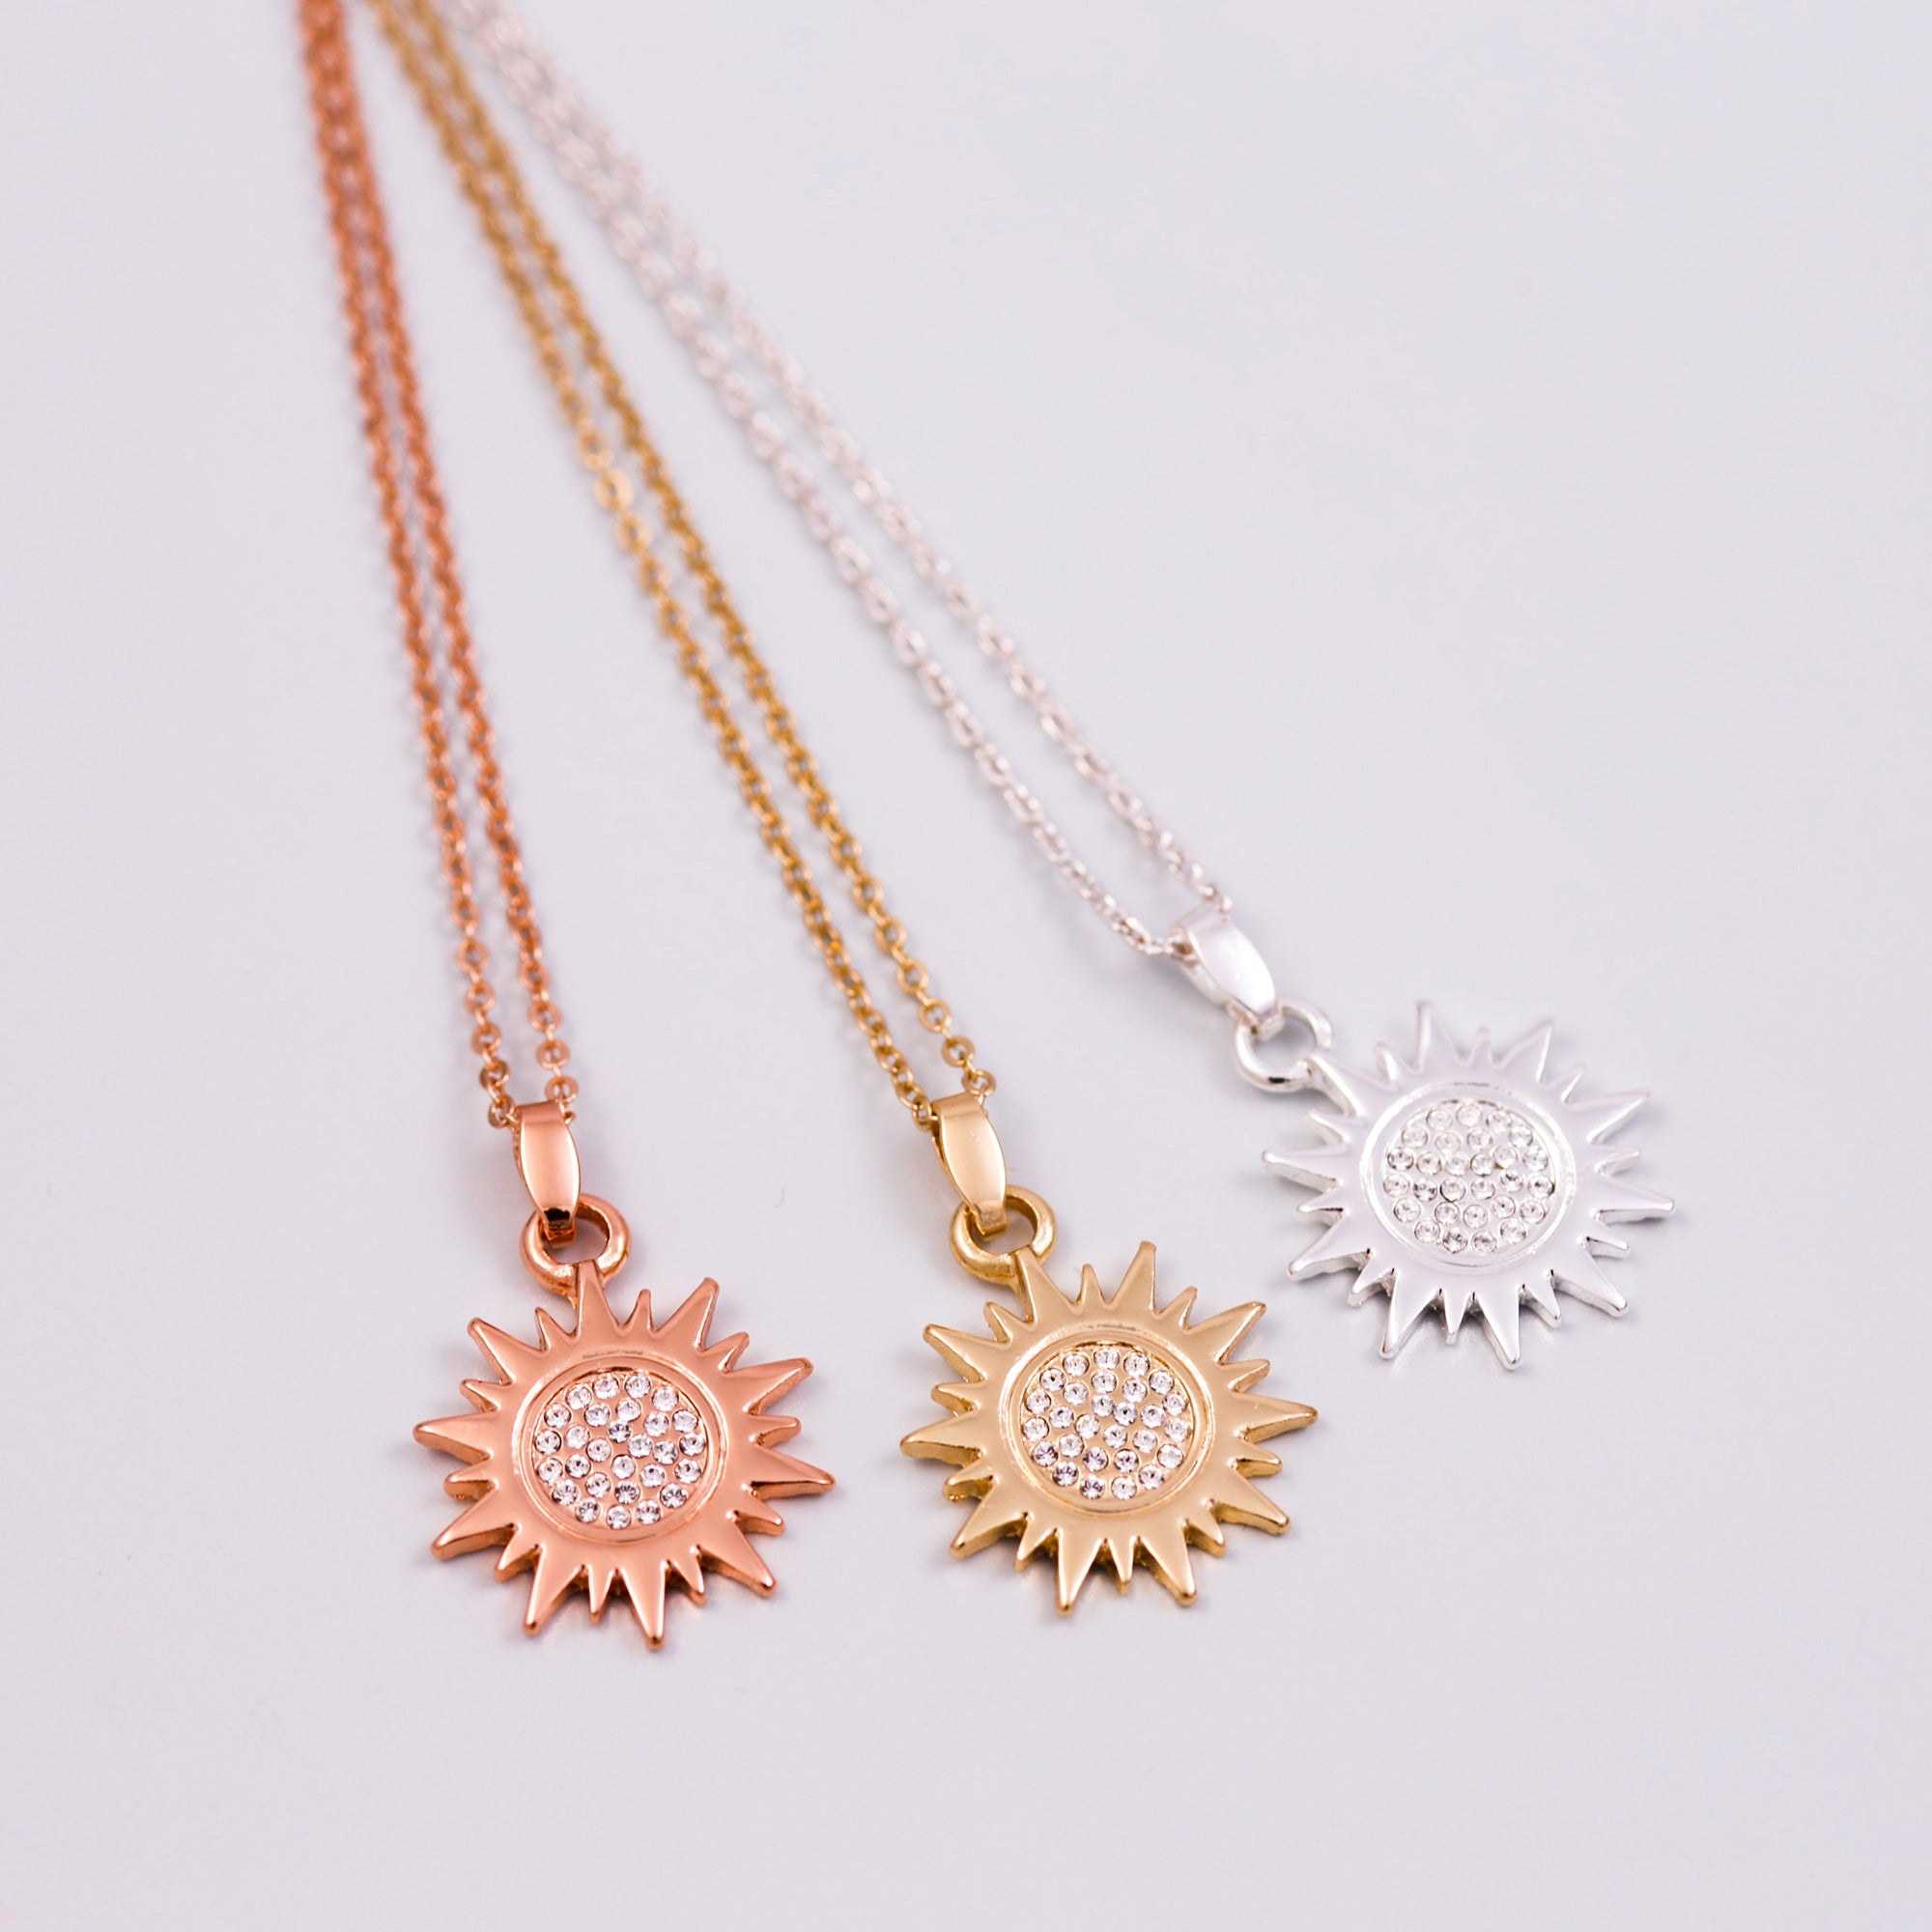 moon sun img necklace east the of west product